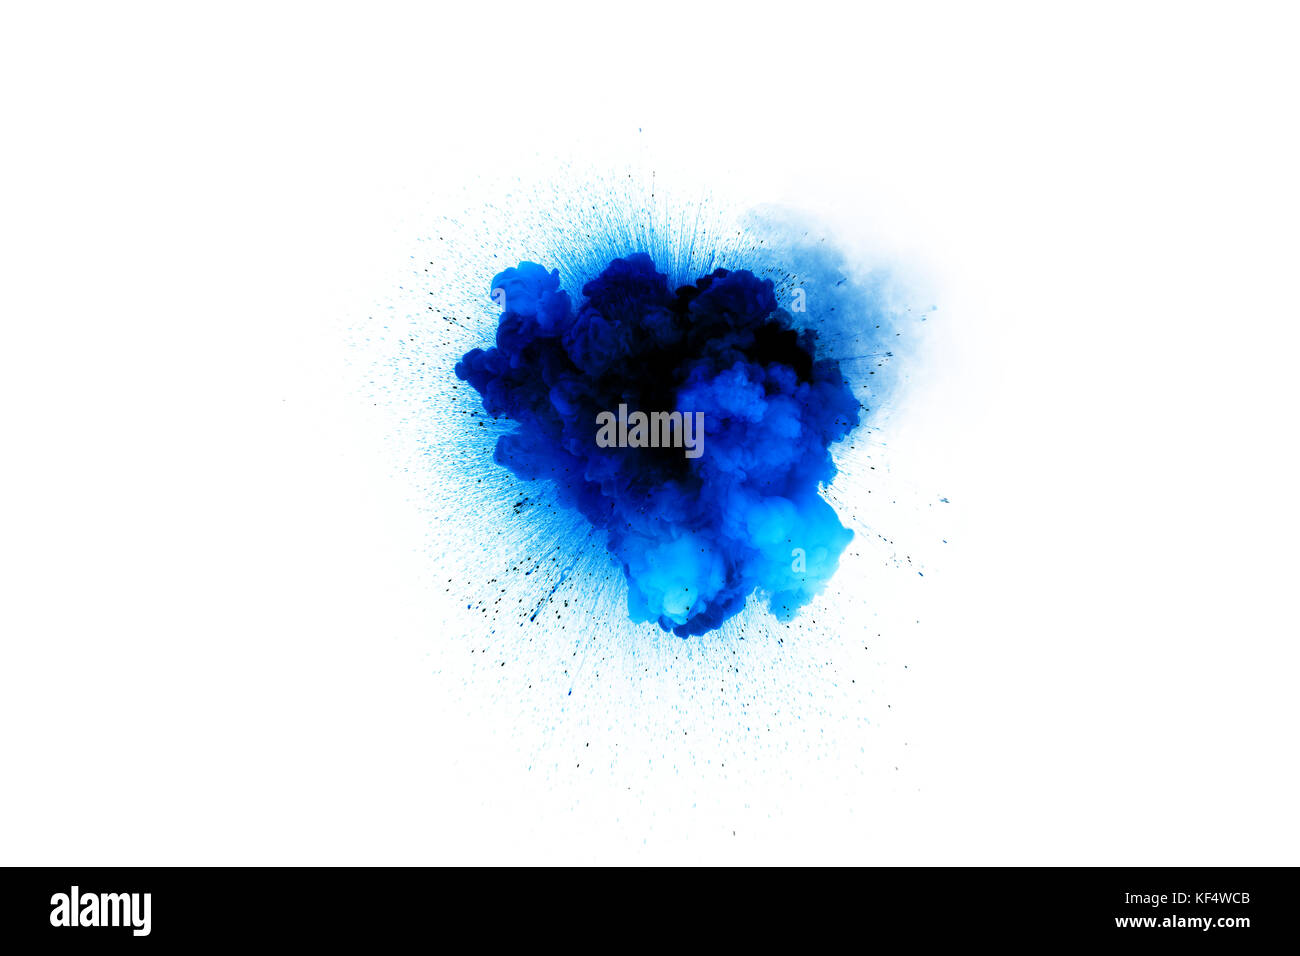 Blue explosion isolated on white background. Toxic gas detonation. - Stock Image